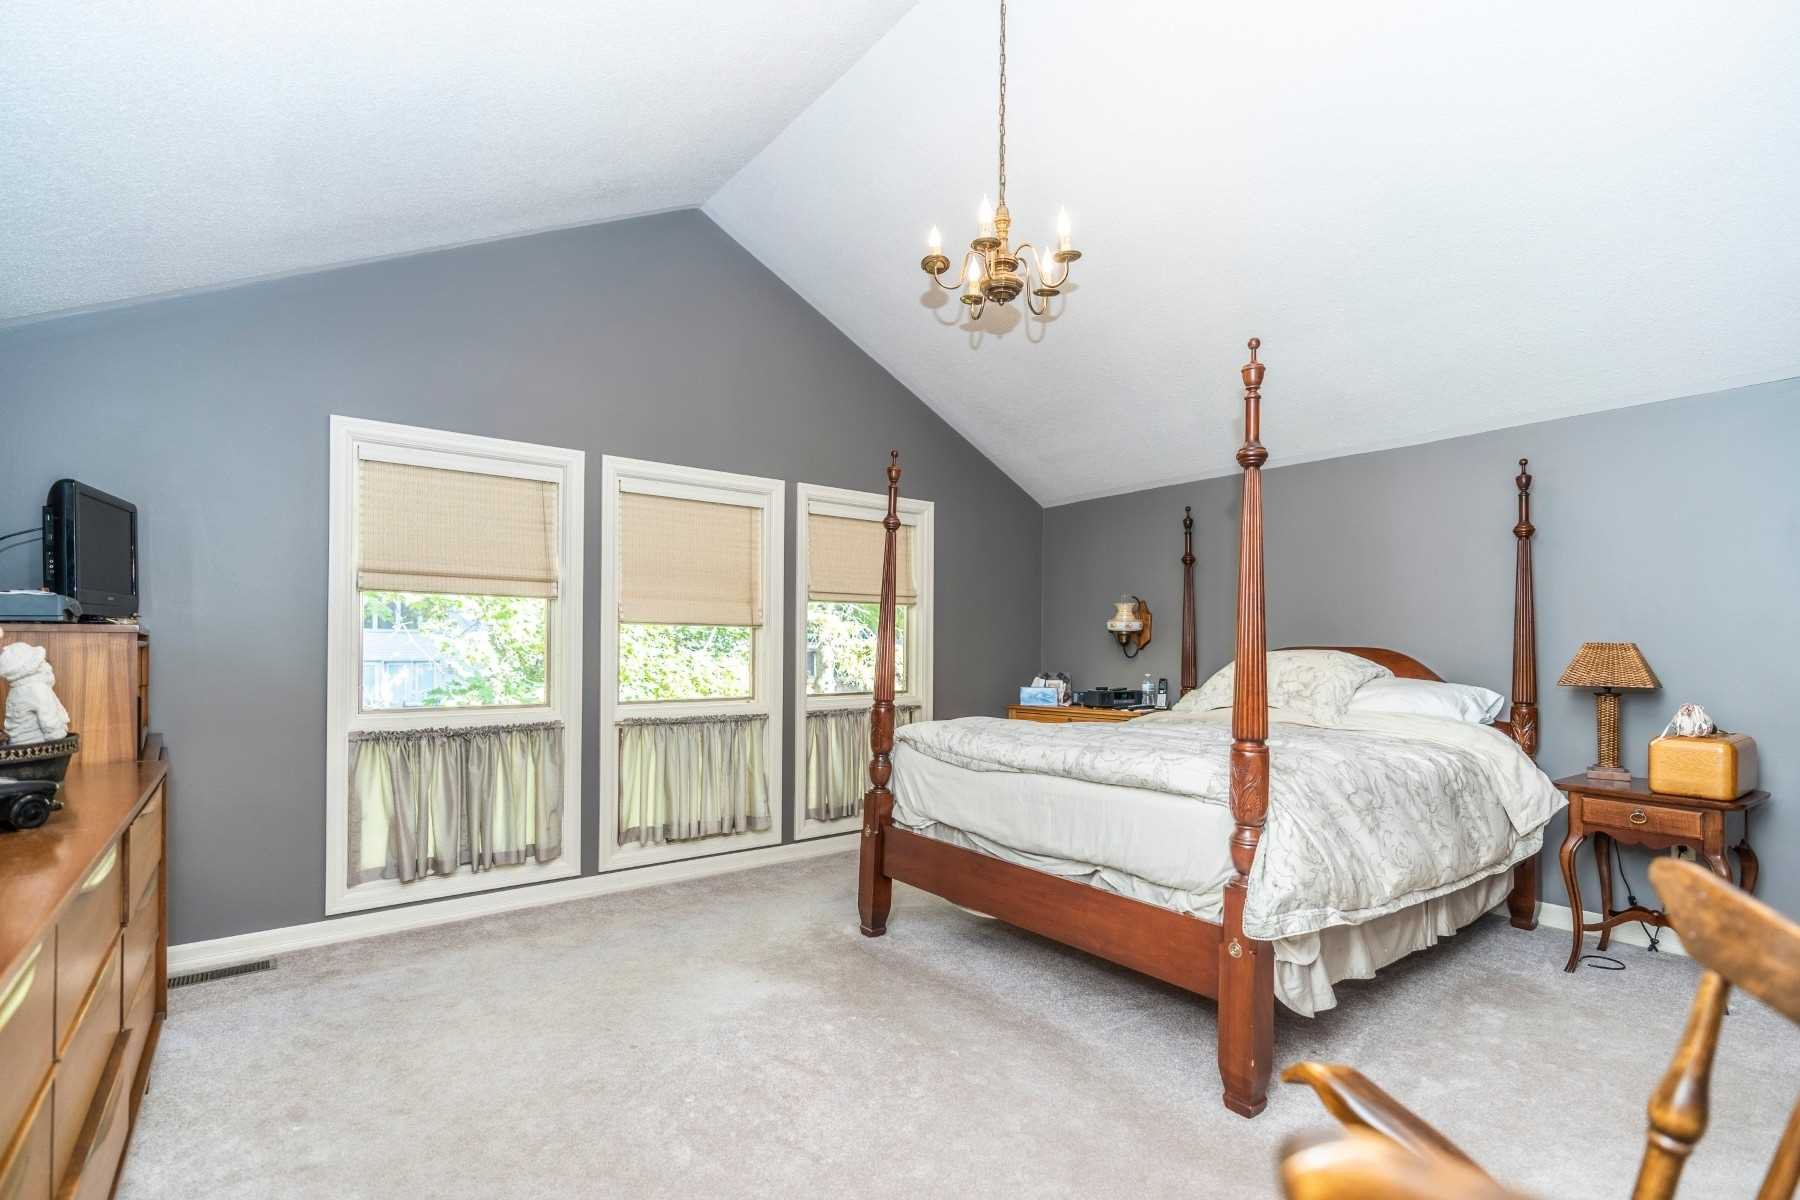 Photo 11: Photos: 914 Regent Drive in Oshawa: Eastdale House (2-Storey) for sale : MLS®# E4617219